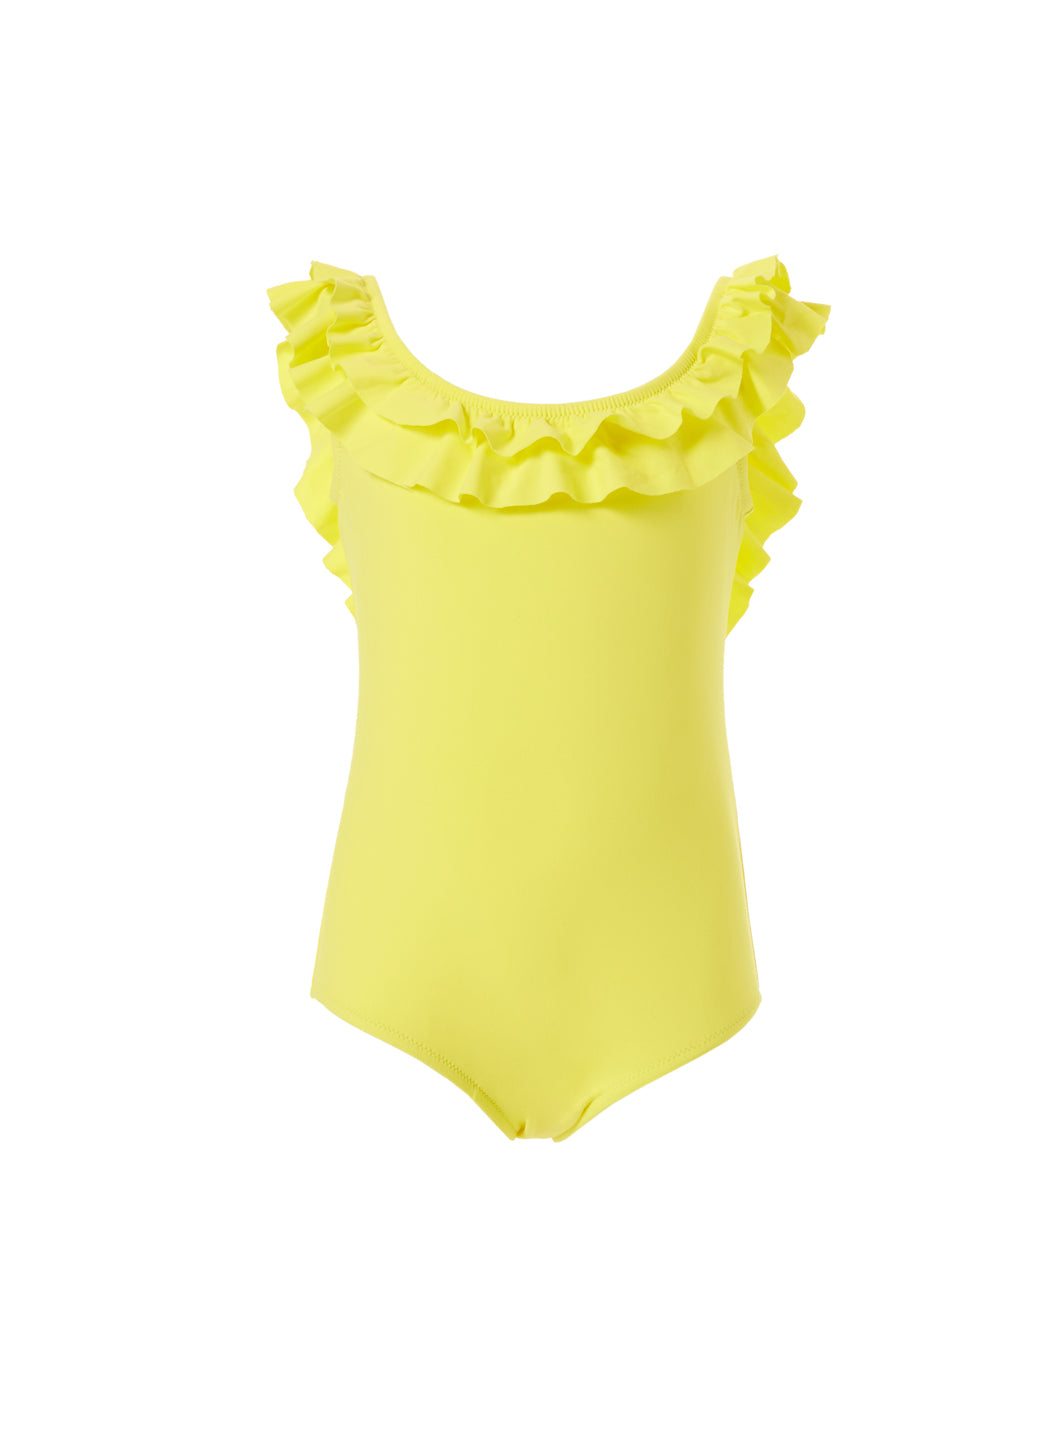 Baby Missy Yellow Over the Shoulder Frill One Piece Swimsuit